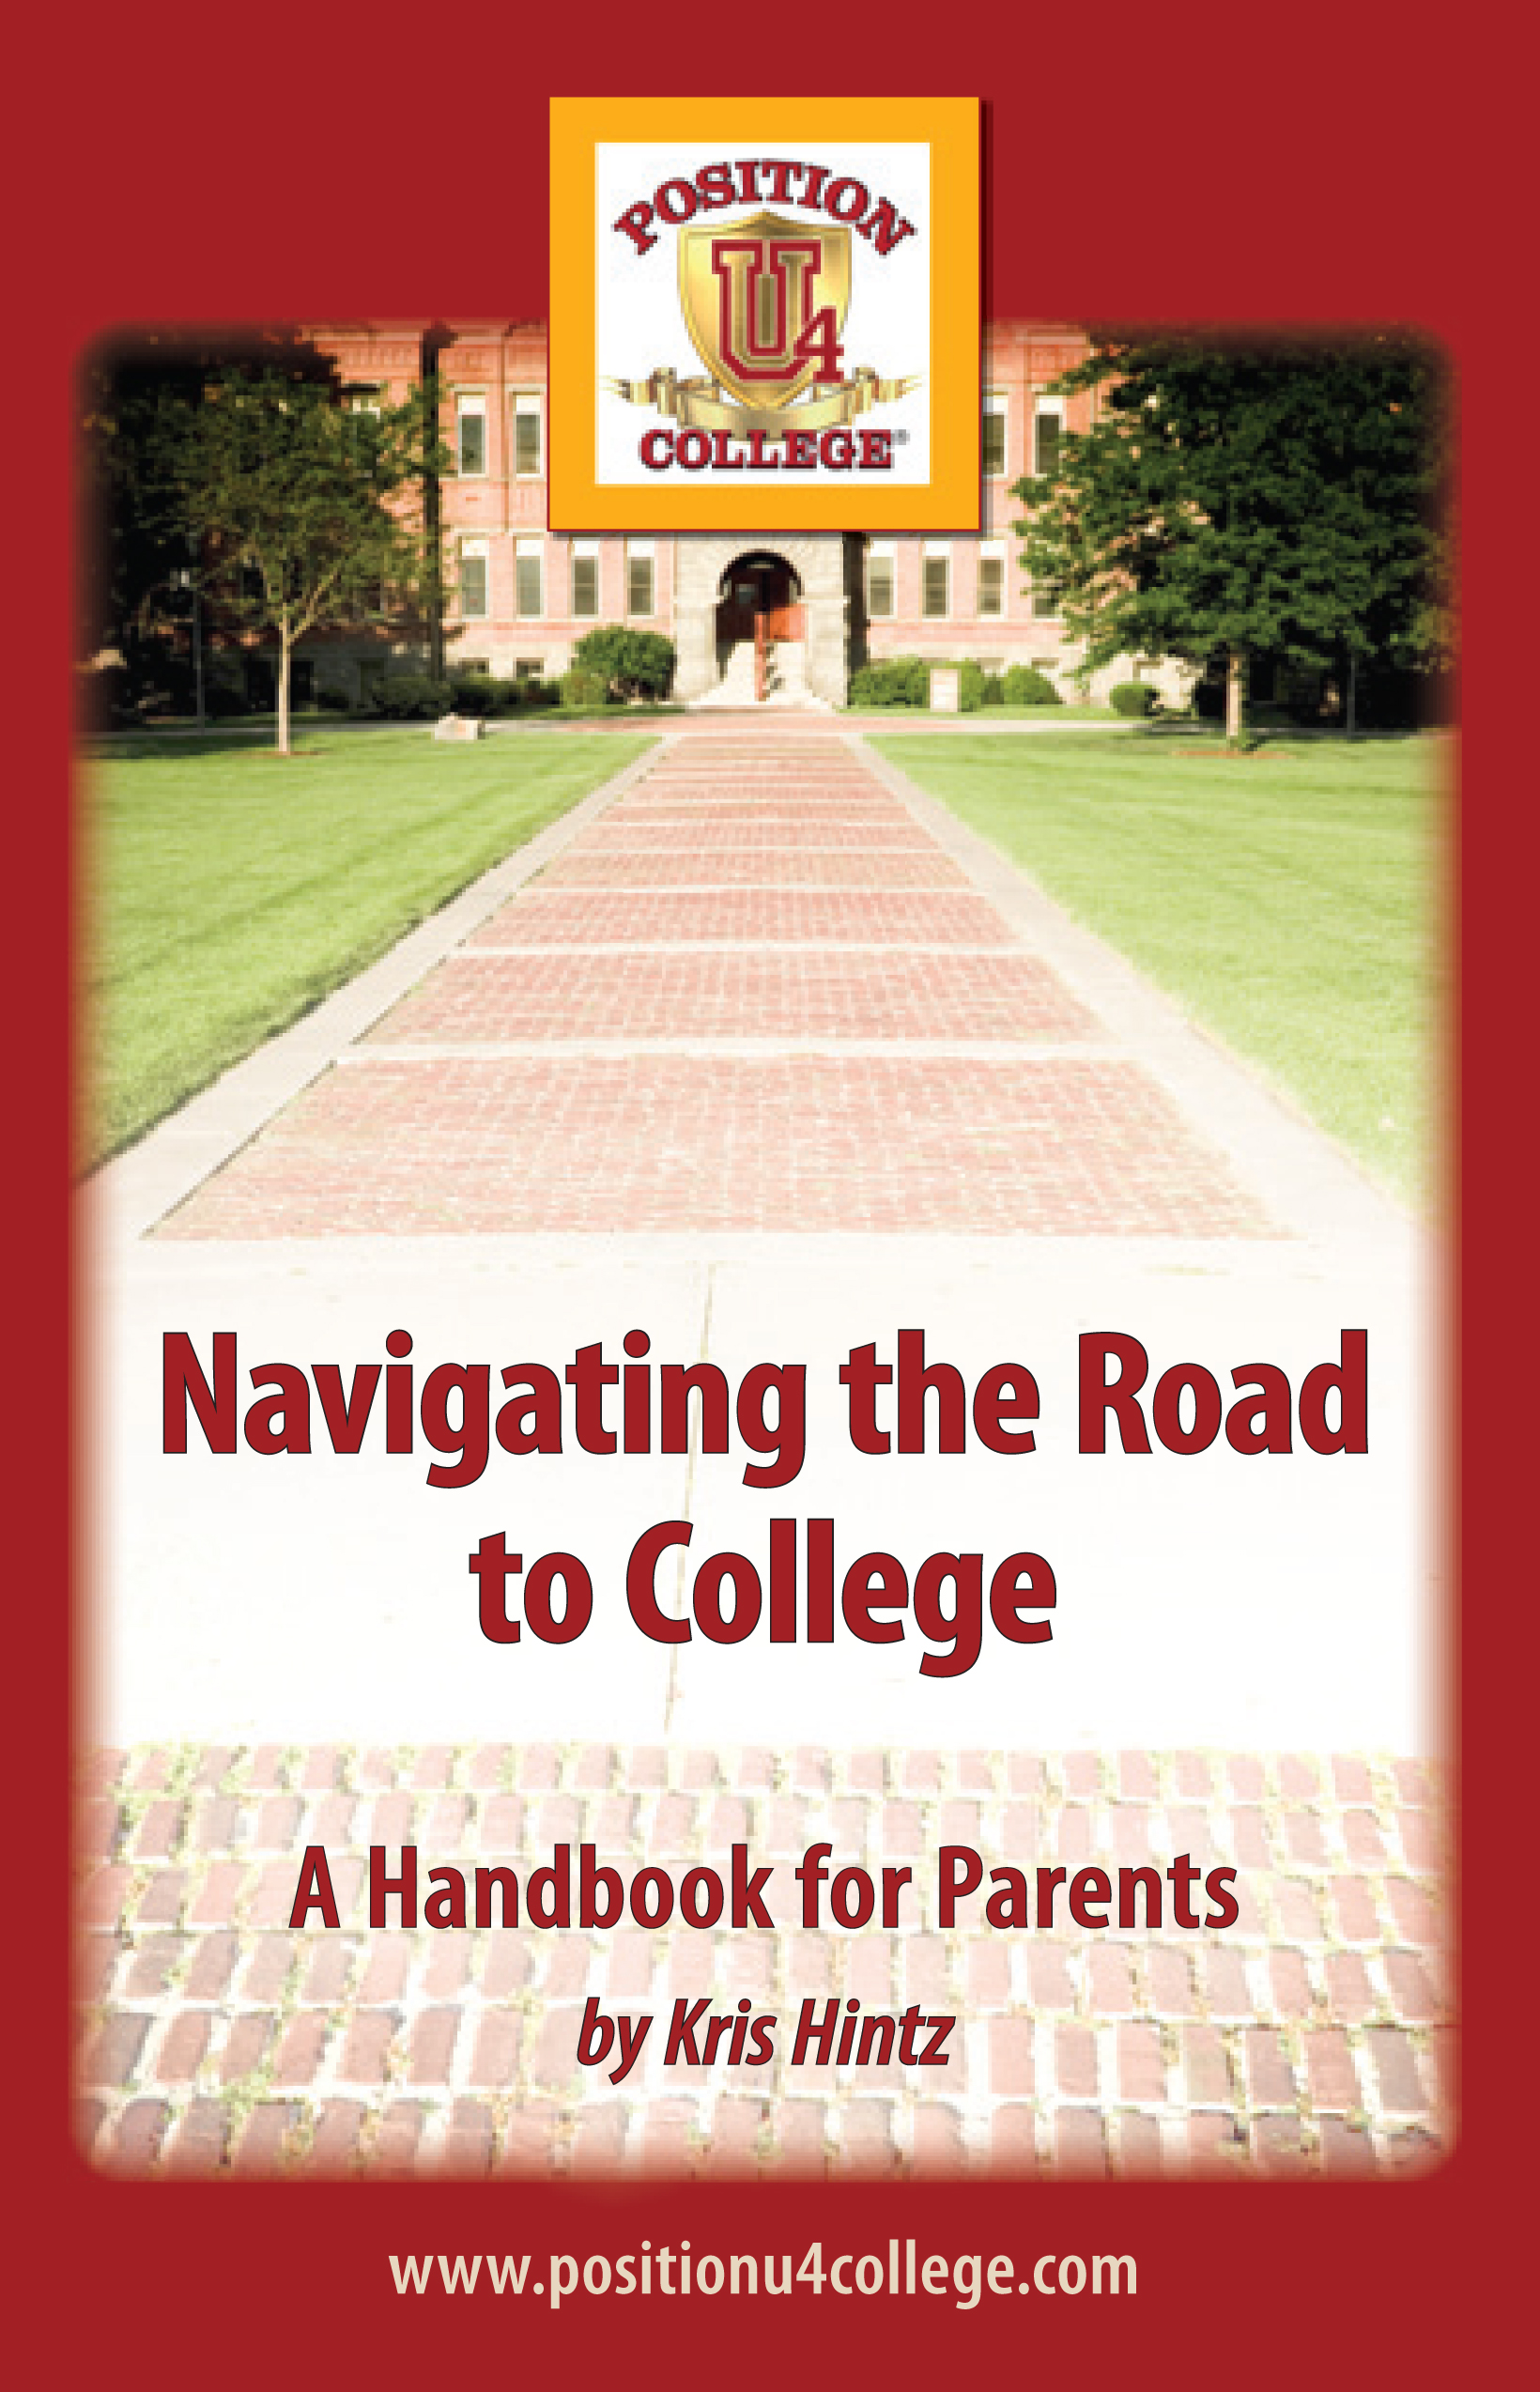 my road to college The arizona department of education has designed resources to help students to plan their road trip to college and careers please find links to student planning guides, resources, and power points slides for use within the classroom or with parents.